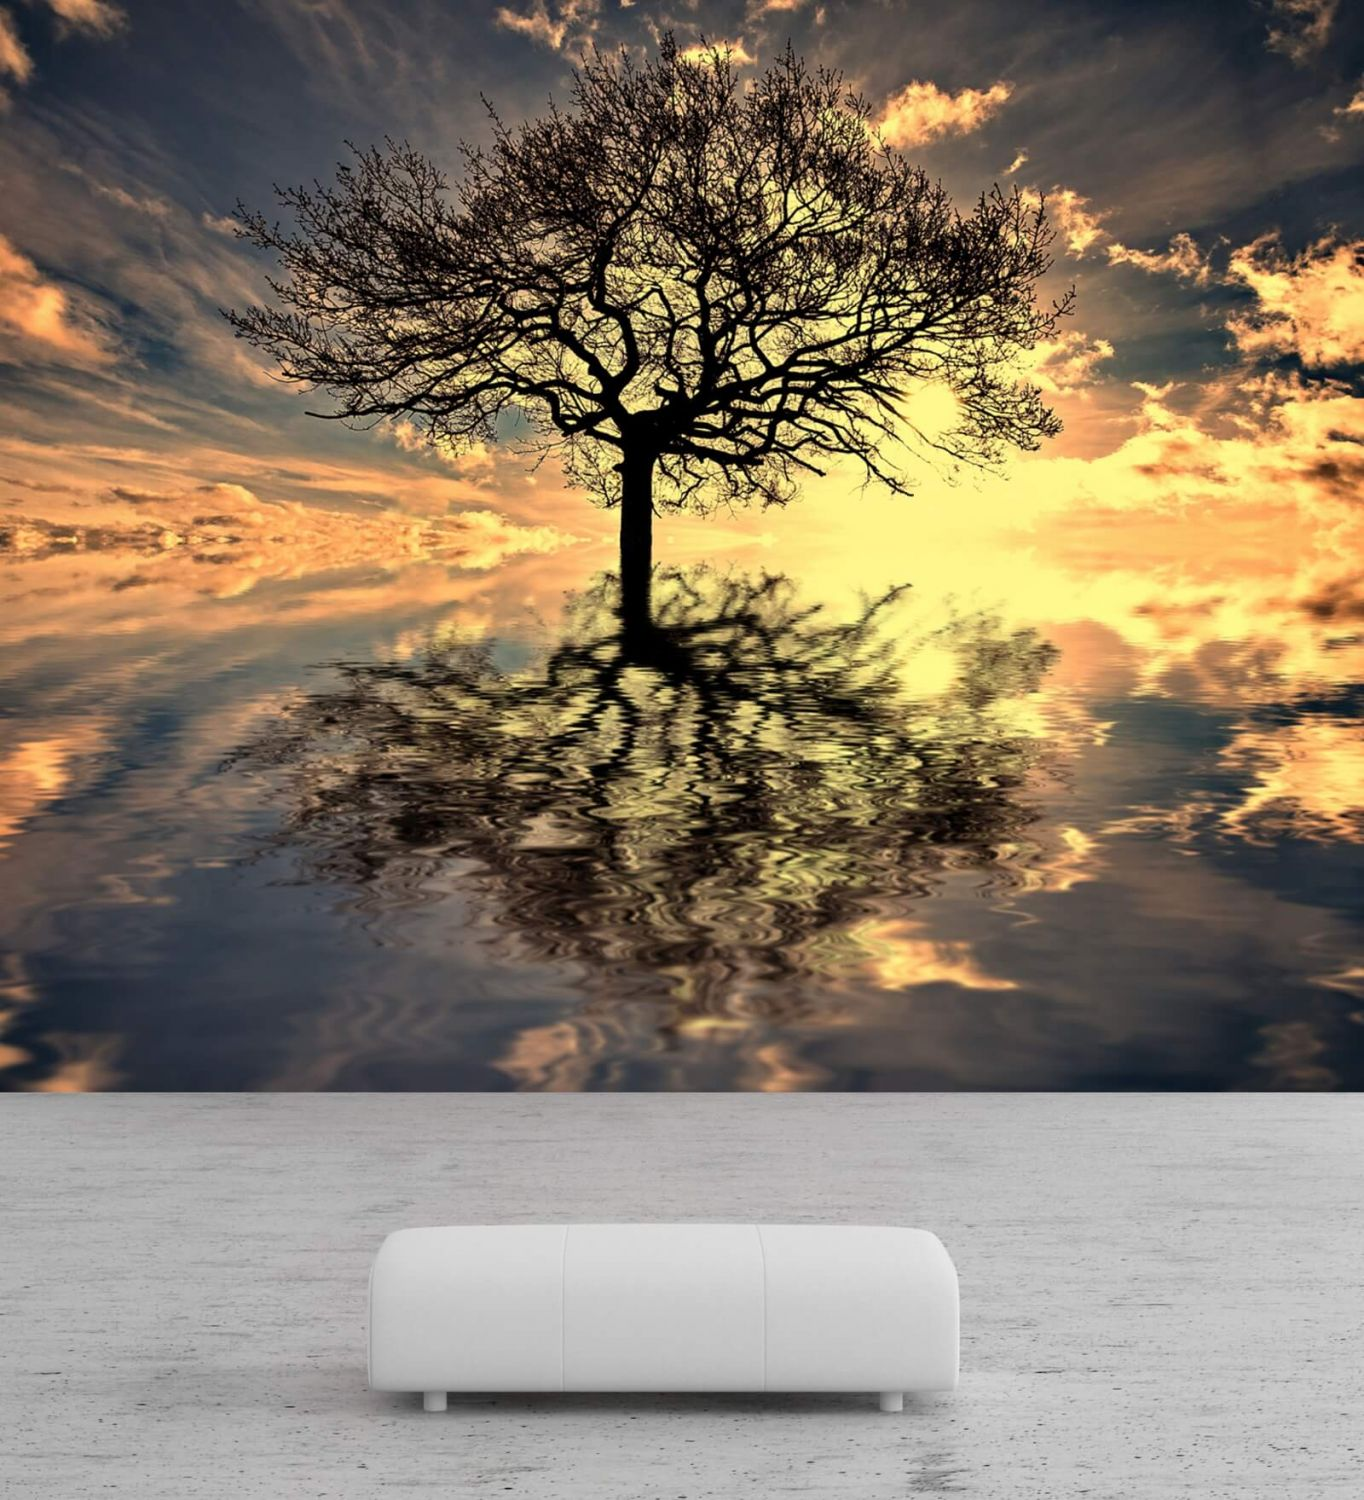 vlies xxl poster tapete fototapete natur lebensbaum ebay. Black Bedroom Furniture Sets. Home Design Ideas